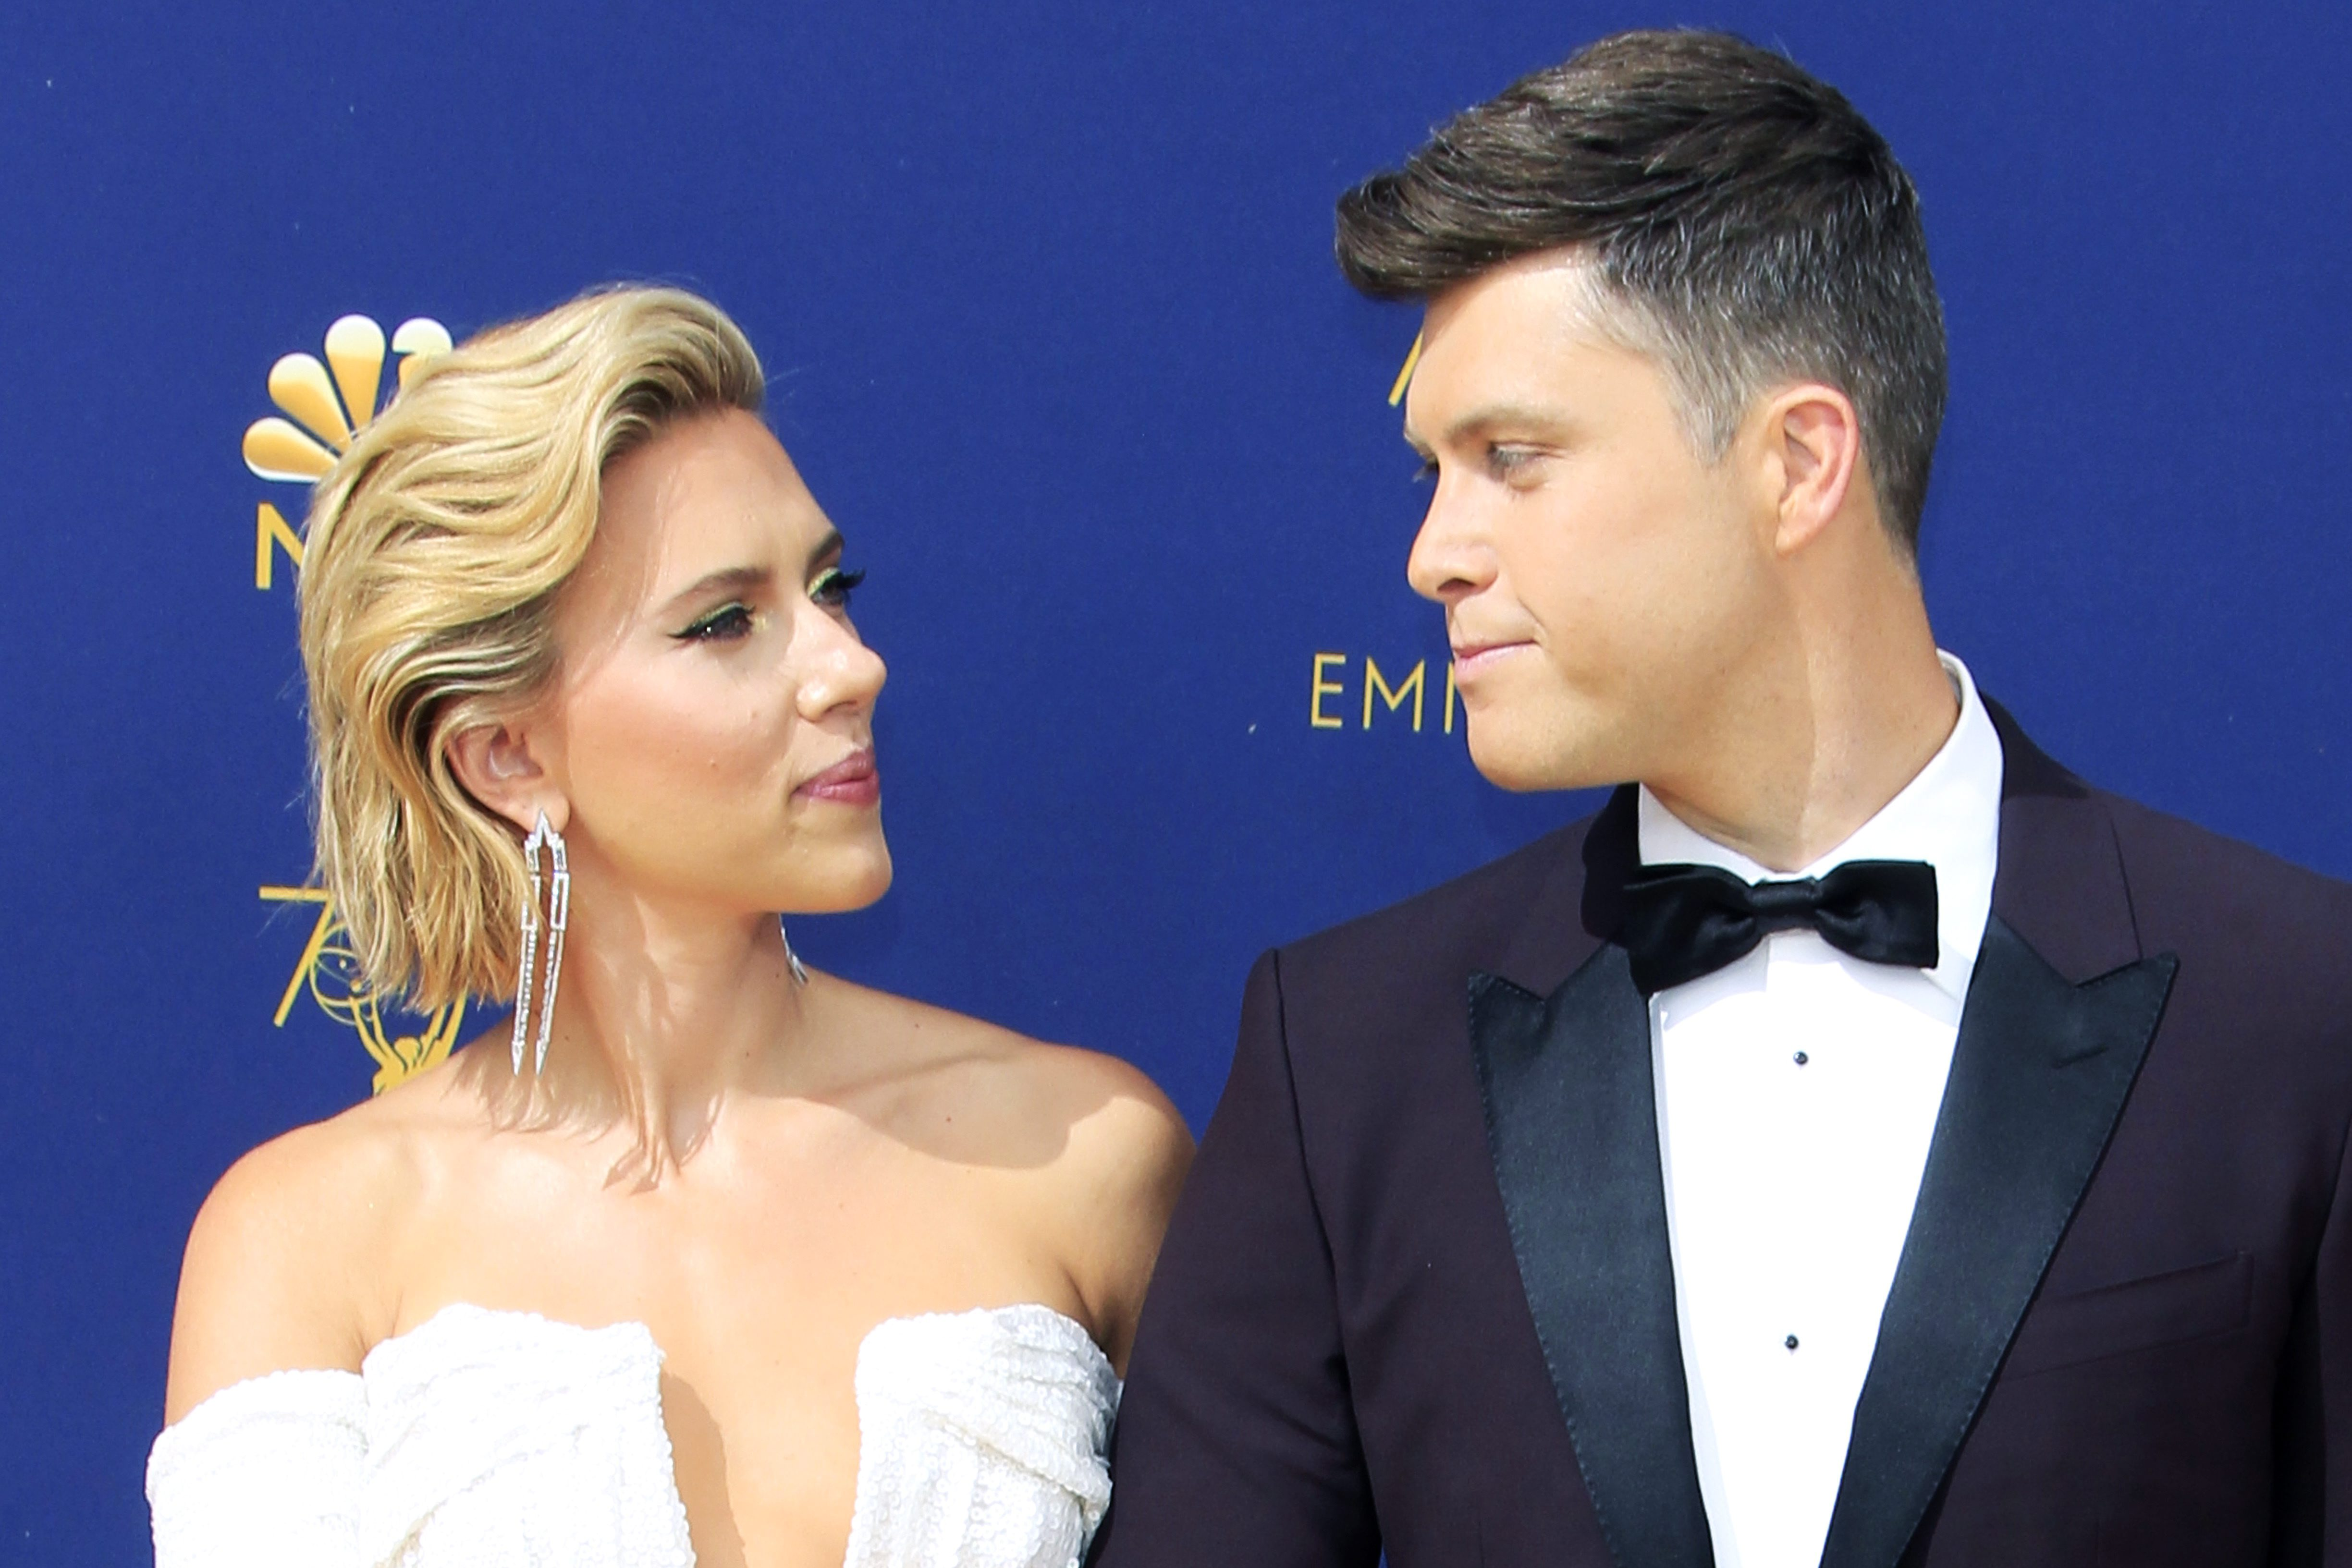 Scarlett Johansson S 5 Year Old Daughter Is Obsessed With Her Mom S Fiance Colin Jost Etcanada Com